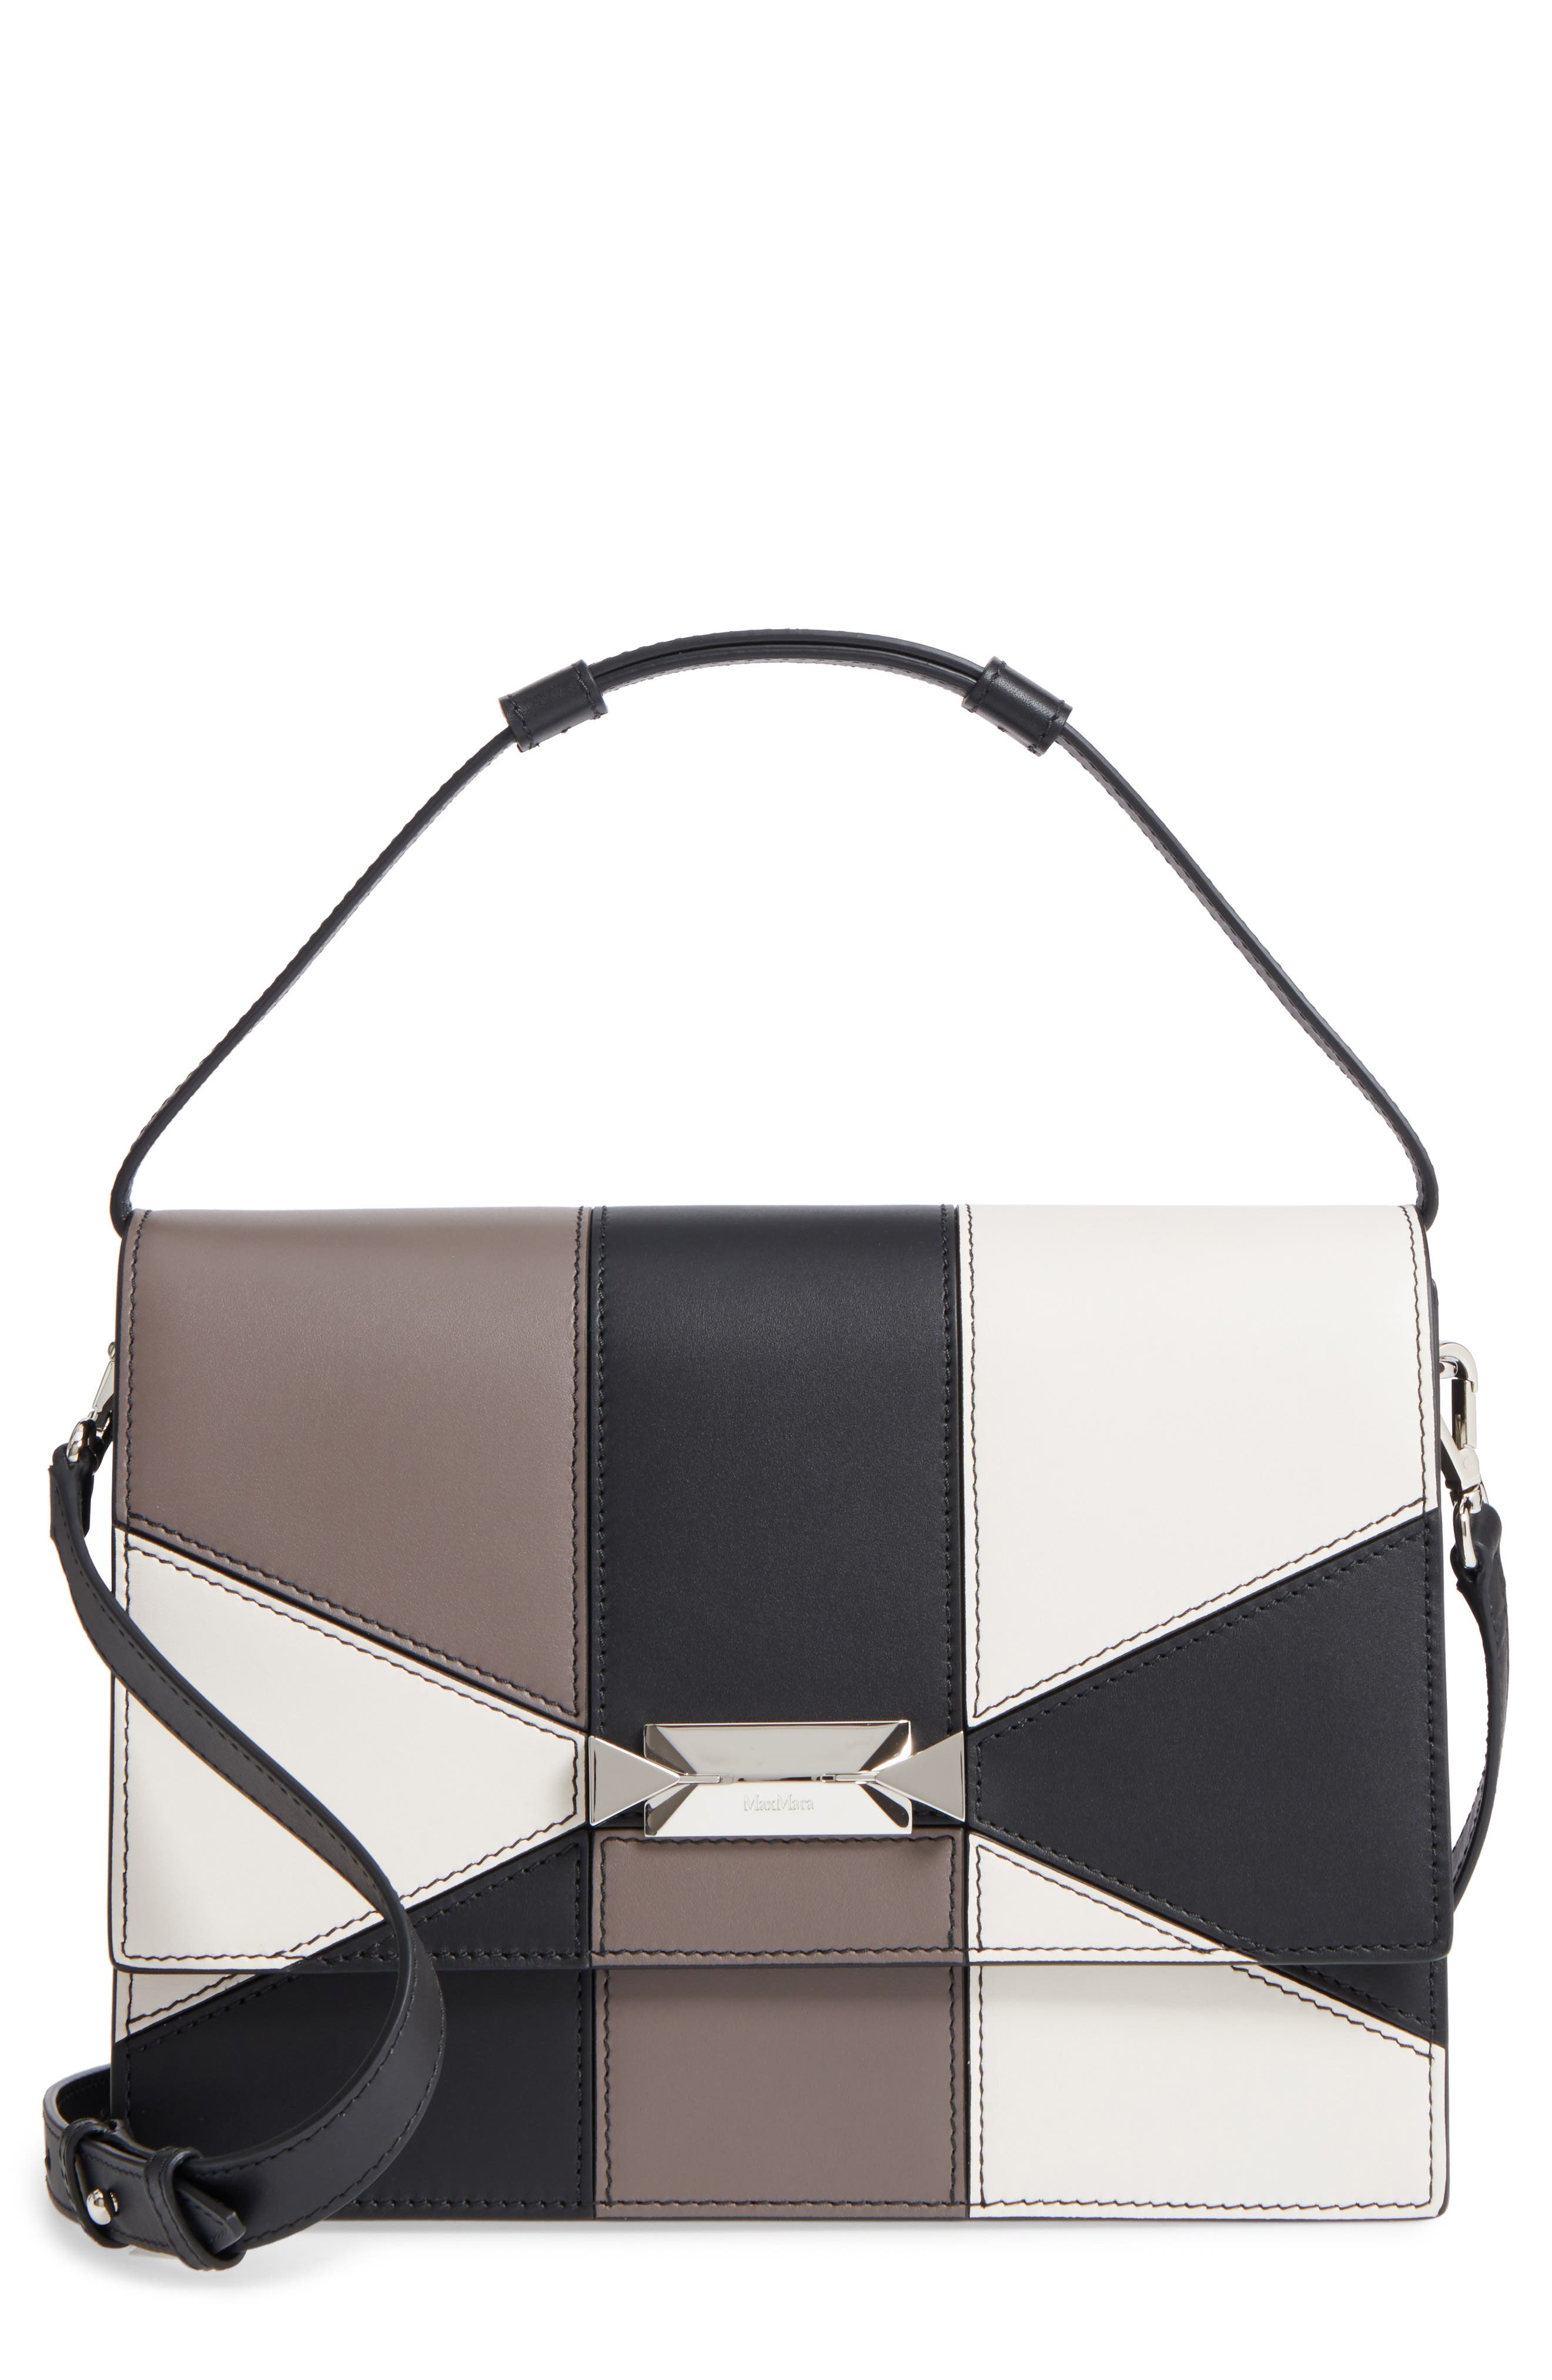 Alternate Image 1 Selected - Max Mara Patchwork Butterfly Calfskin Leather Top Handle Satchel